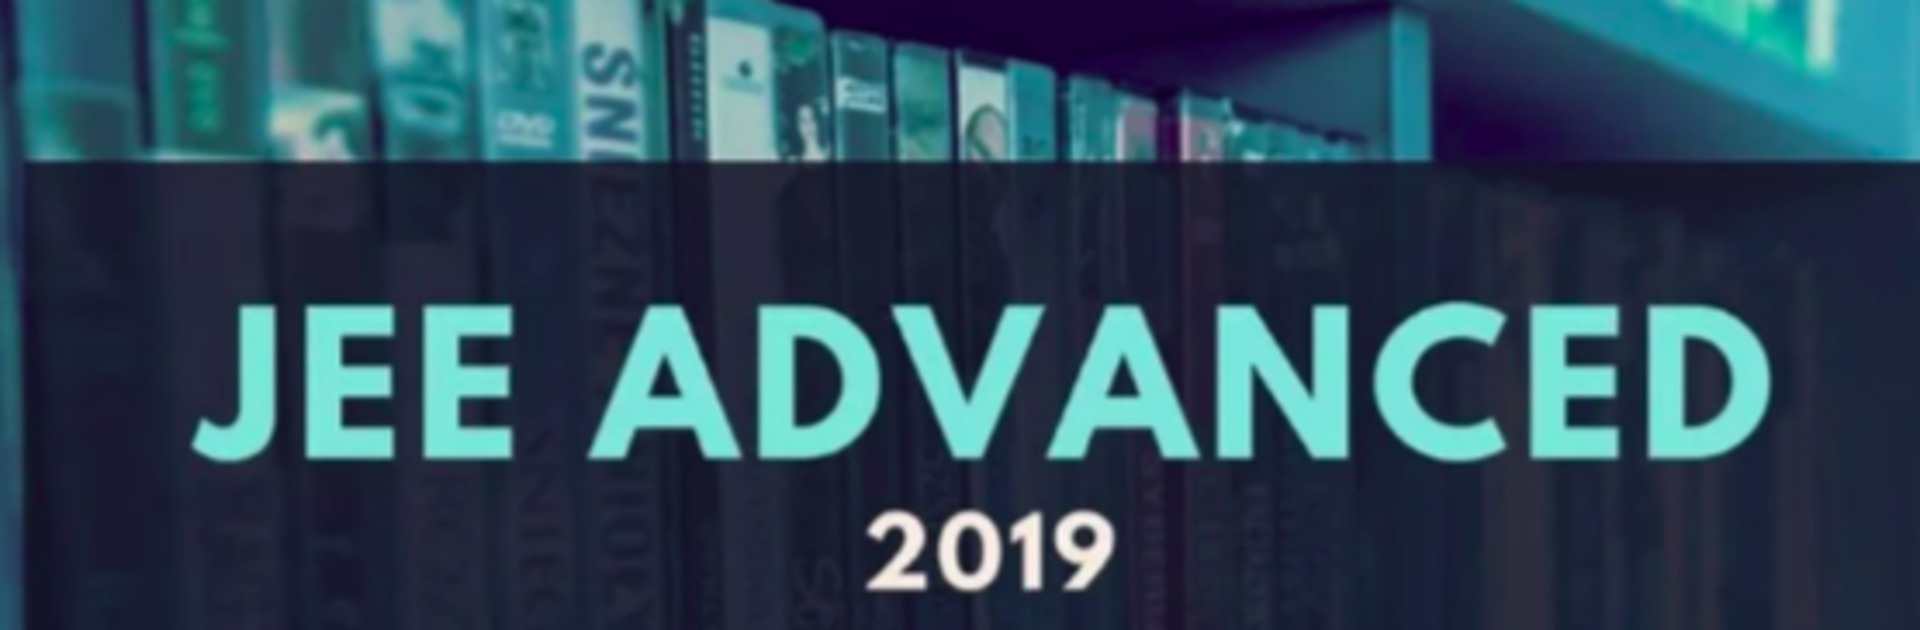 JEE Advanced Participating Institutes 2019 image